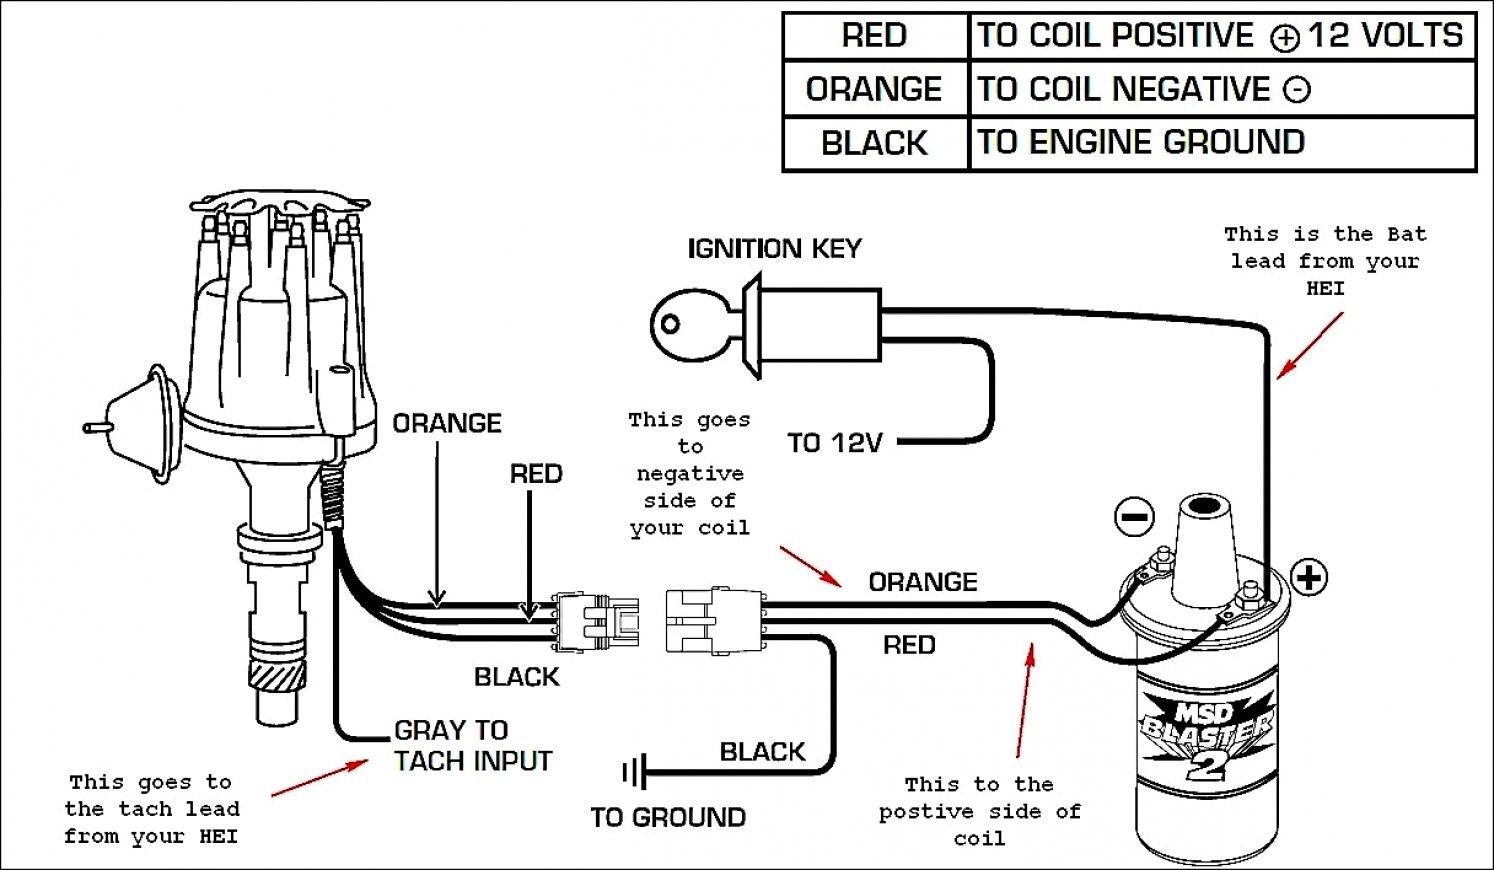 ford 360 coil wiring - wiring diagrams data time-write -  time-write.ungiaggioloincucina.it  ungiaggioloincucina.it